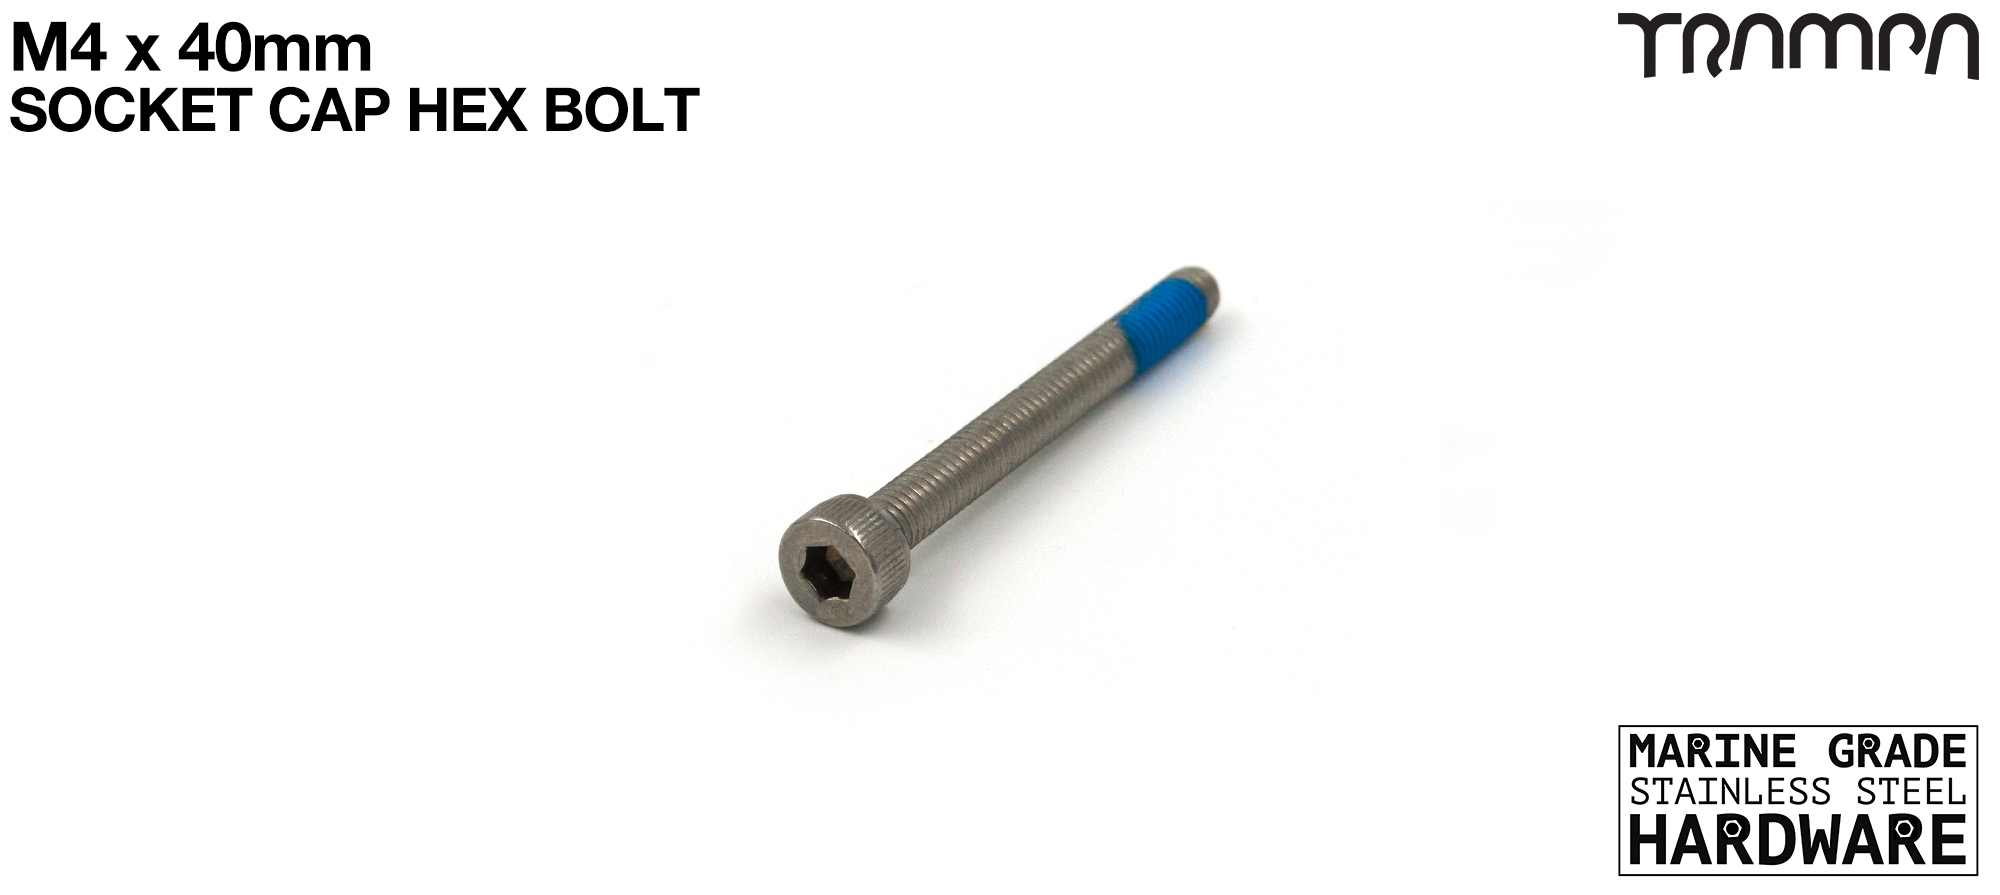 M4 x 40mm Stainless steel Superstar hub bolt